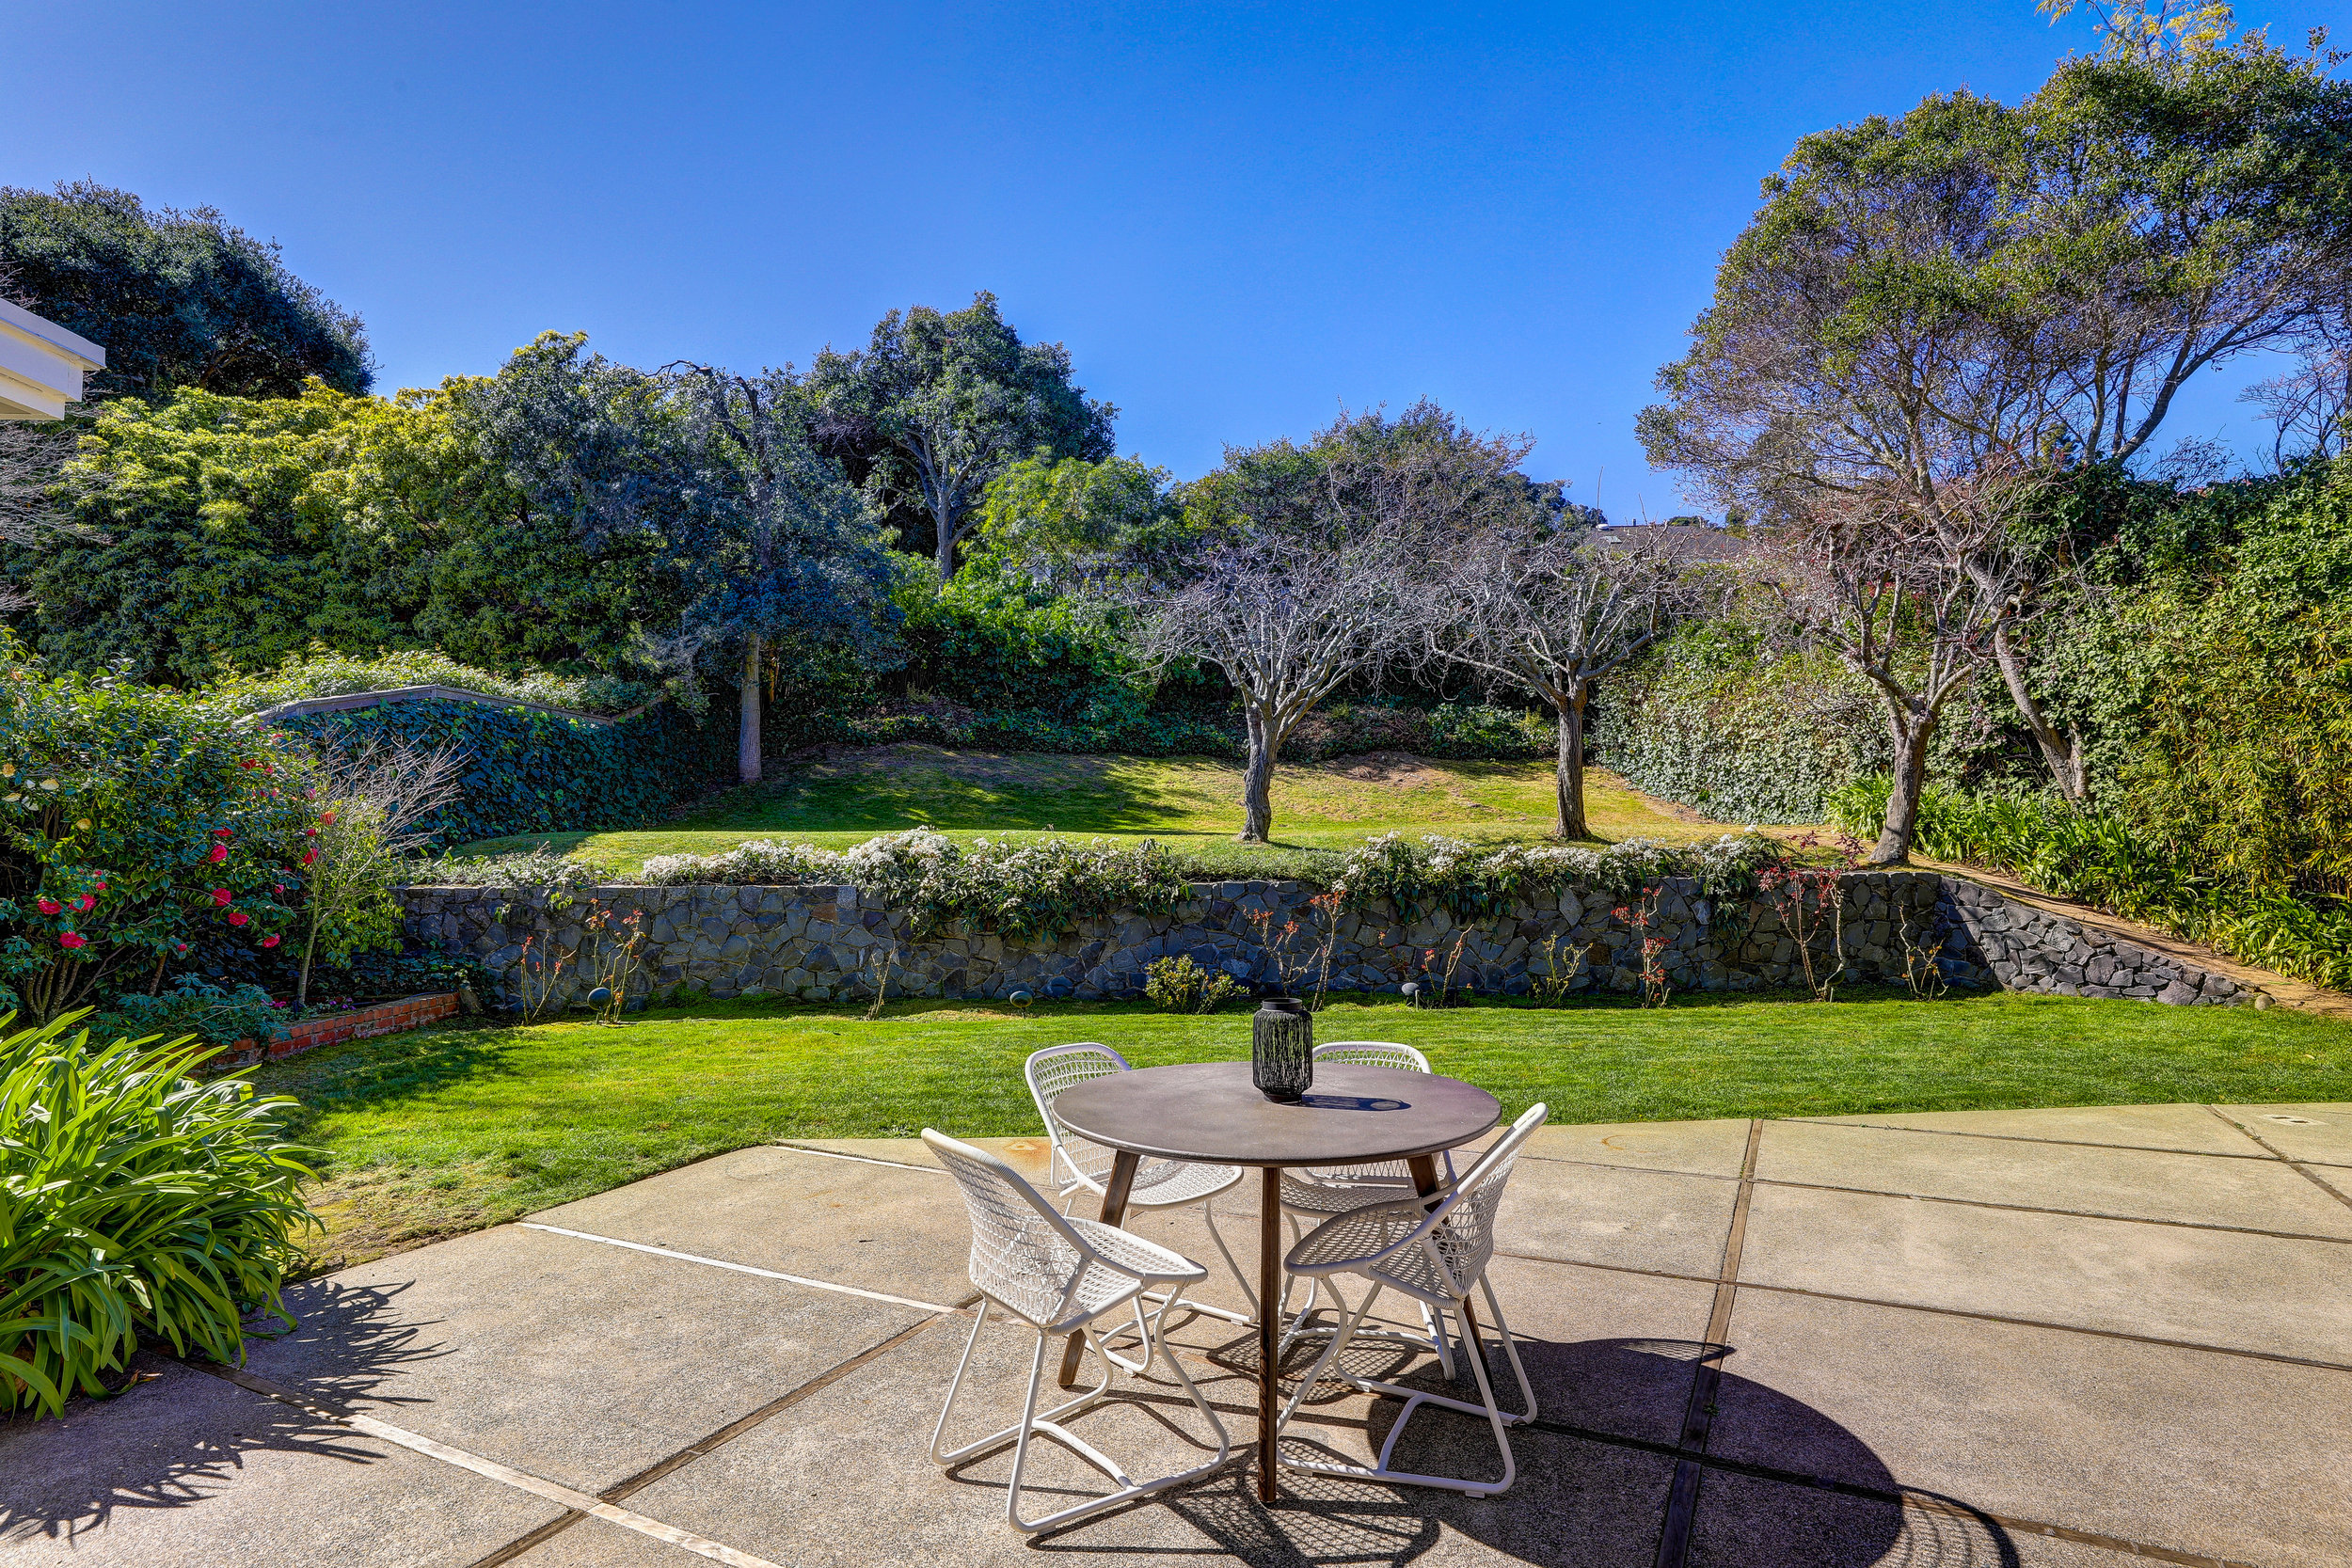 325 san rafael avenue belvedere listed by own marin barr haney whitney potter own marin